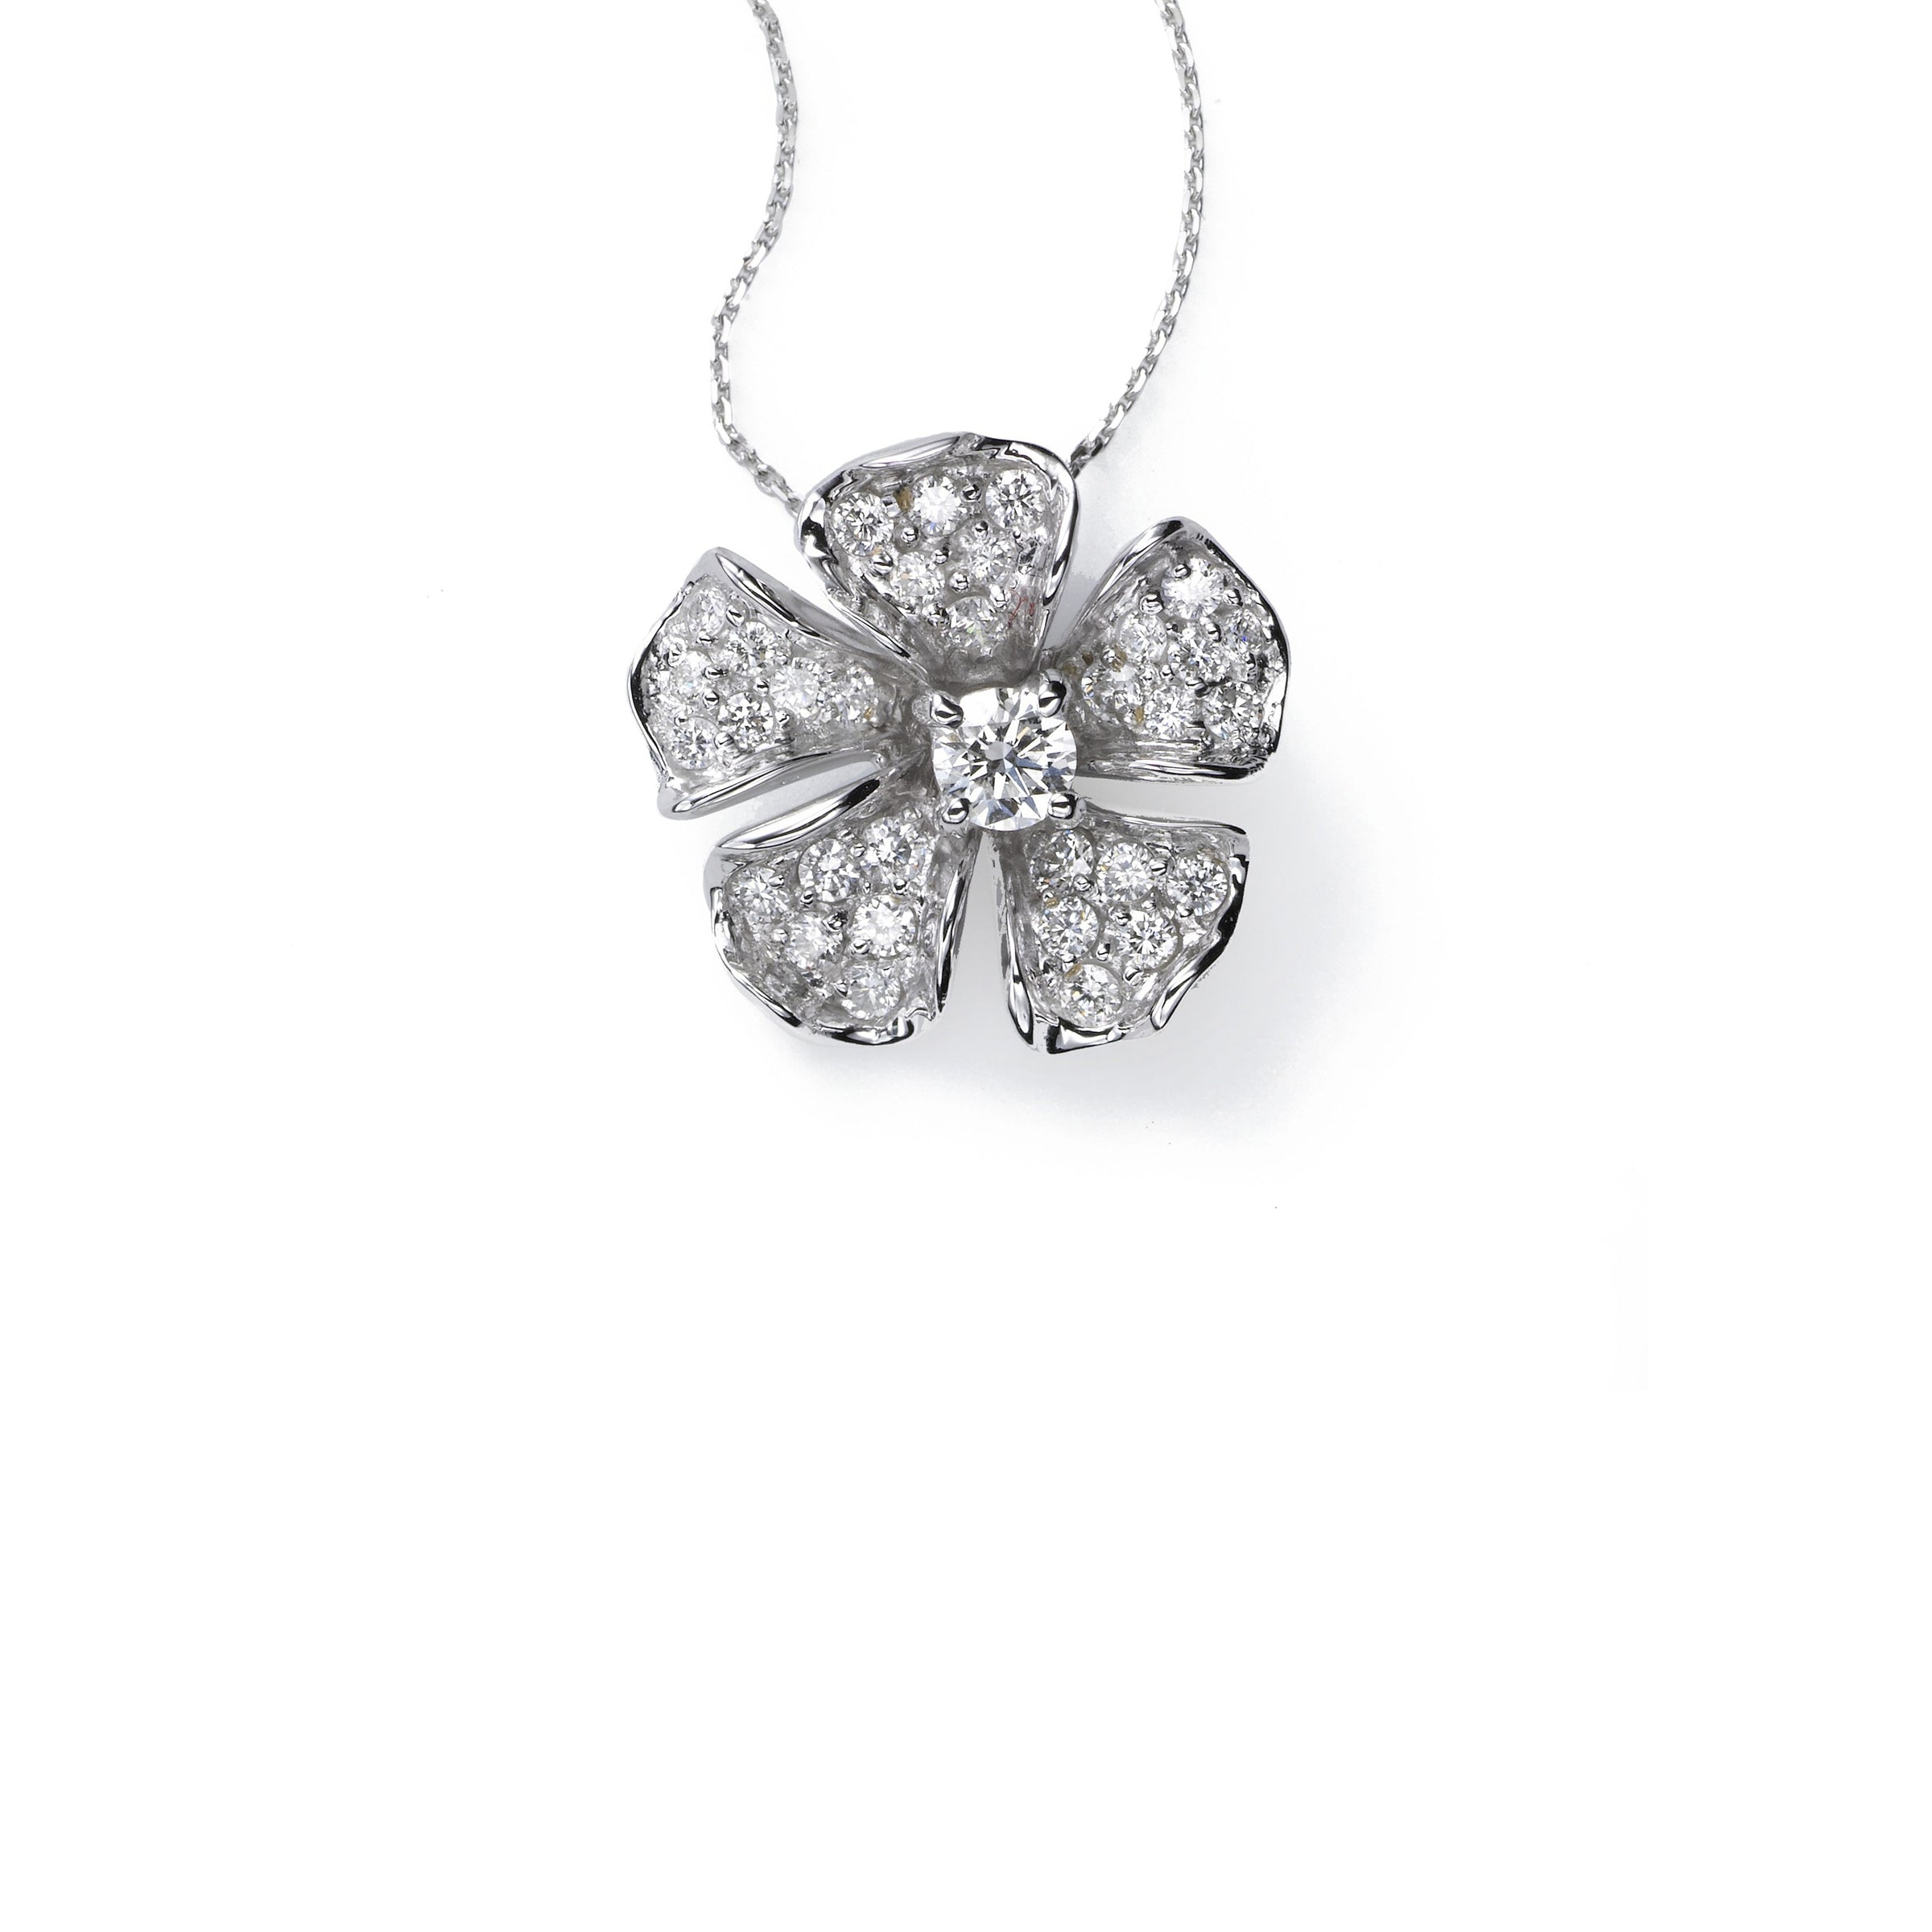 Magnolia Collection Pave Set Diamond Pendant, 18K White Gold